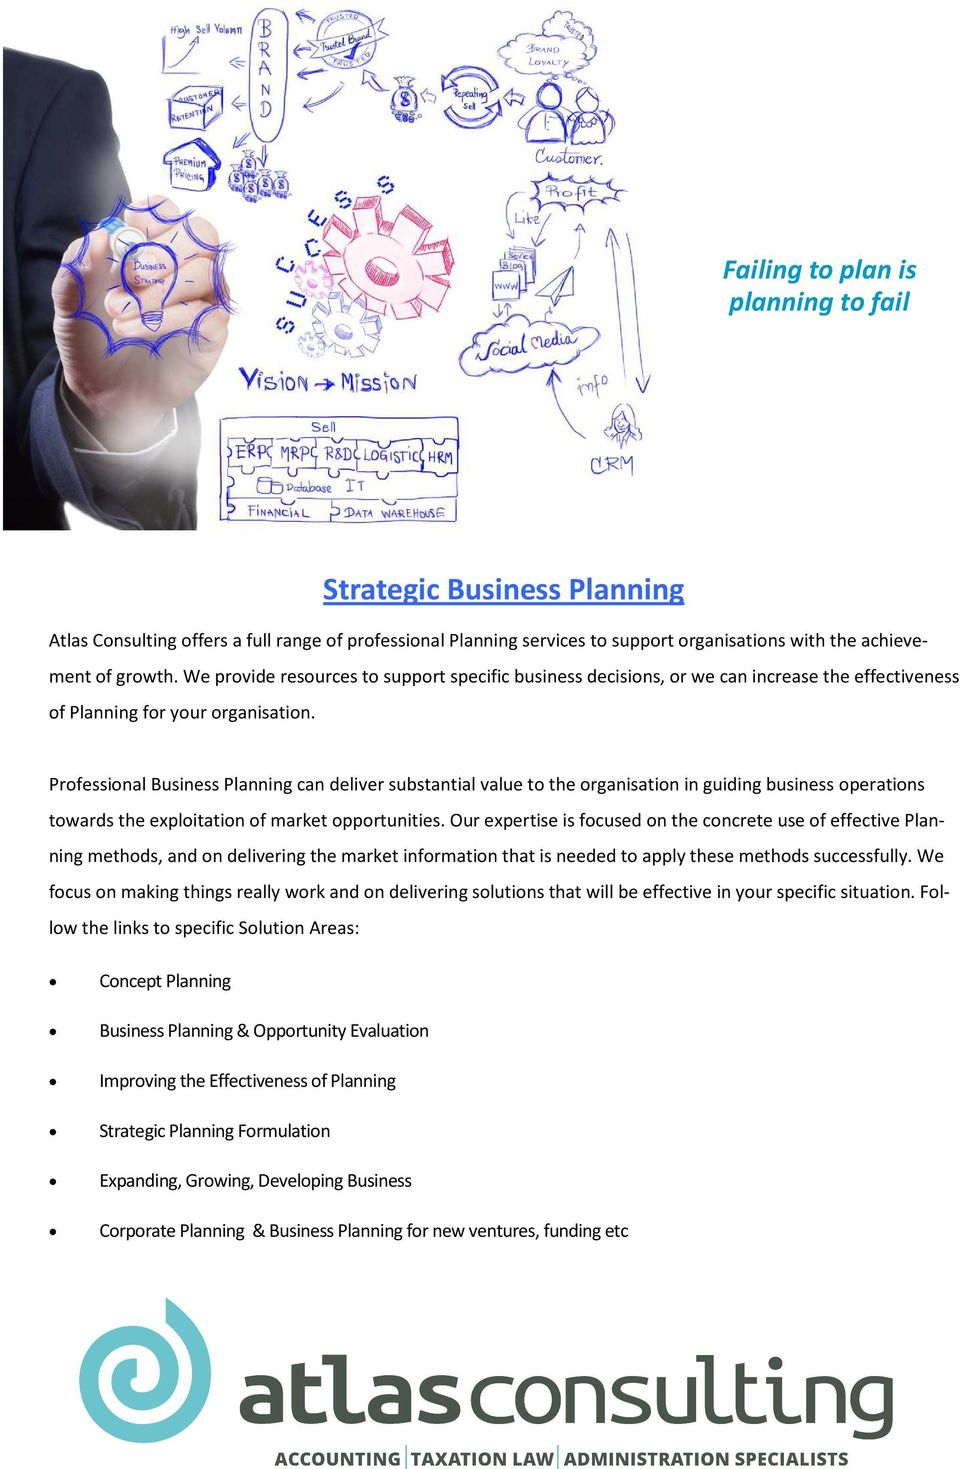 Professional Business Planning can deliver substantial value to the organisation in guiding business operations towards the exploitation of market opportunities.